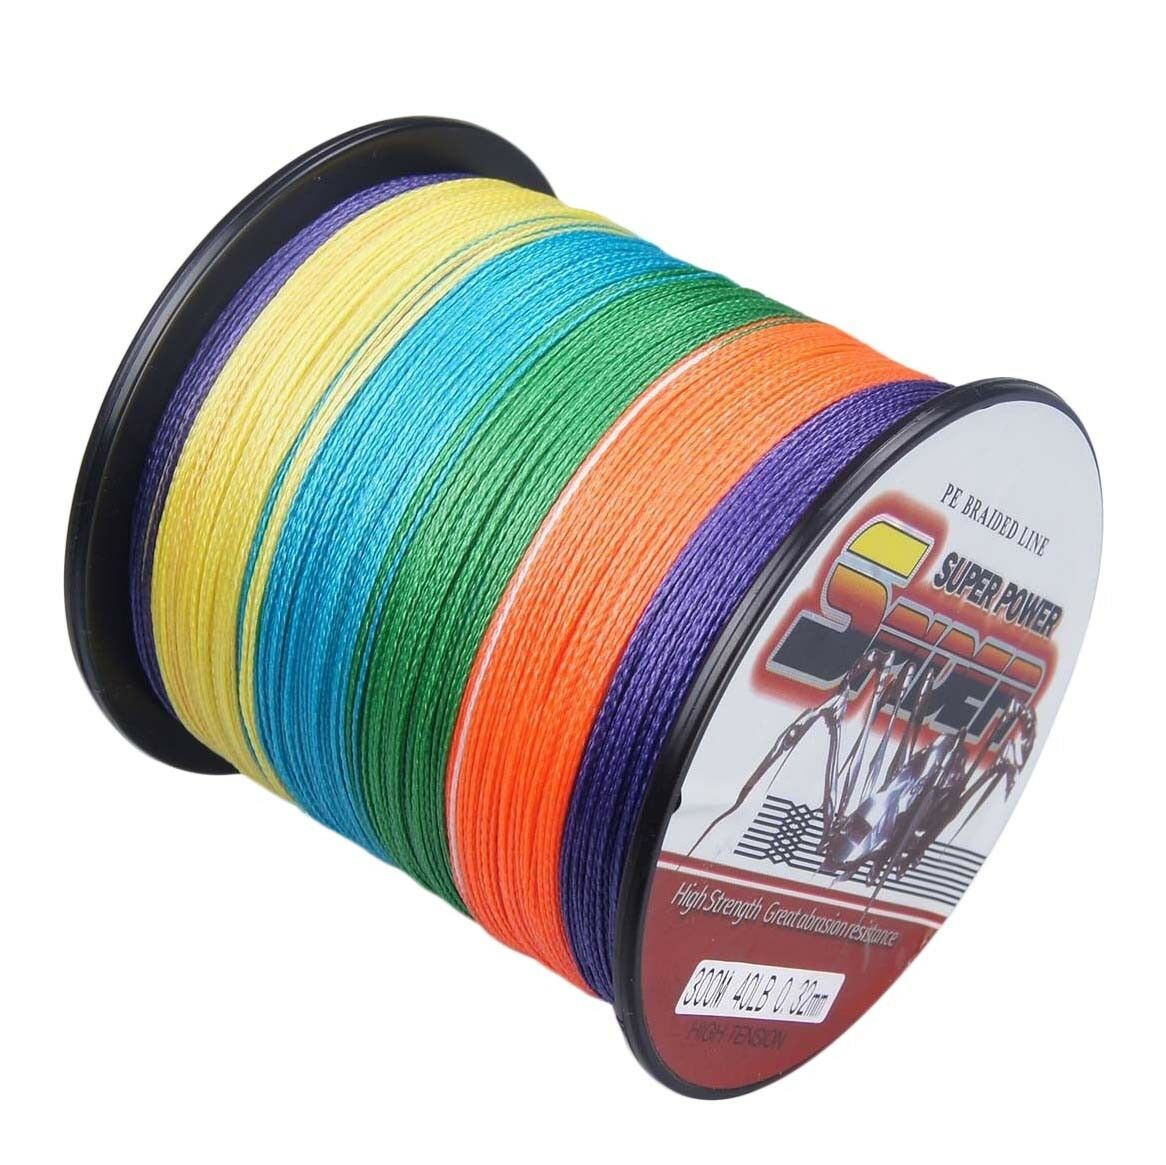 Multi Super Power Braided Fishing Line 109yds~2187yds 6LB- 300LB SPIDER